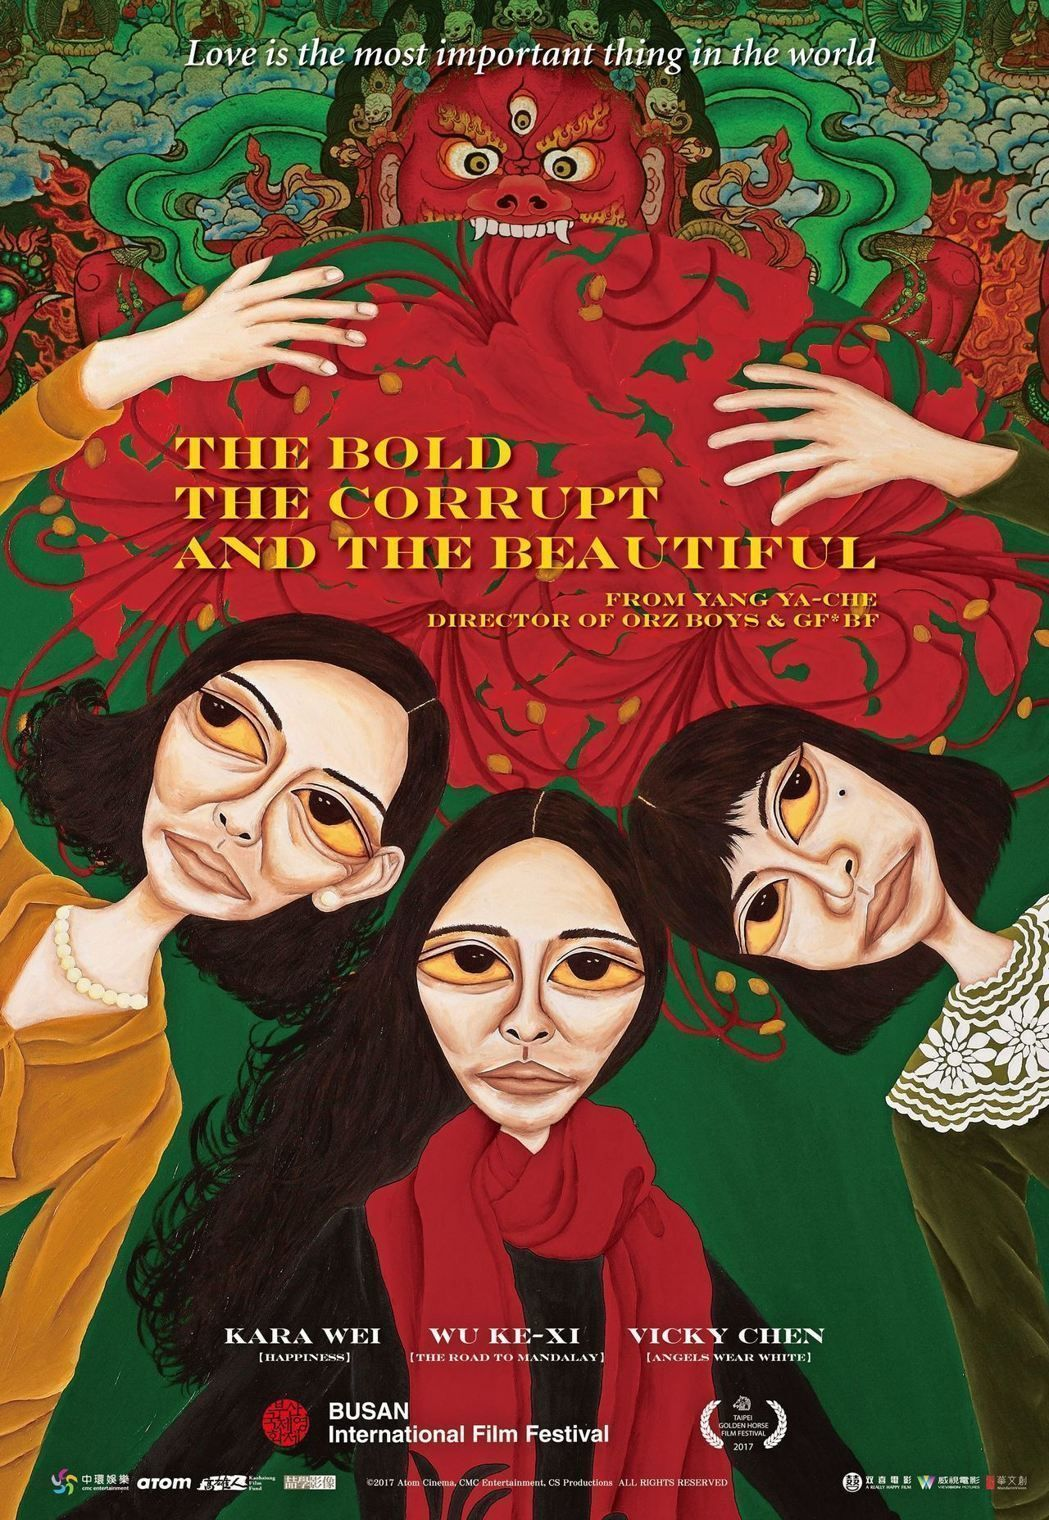 The Bold The Corrupt And The Beautiful Starring Kara Wei Wu Ke Xi Vicky Chen Directed By Yan Beautiful Posters Best Movie Posters Full Movies Online Free